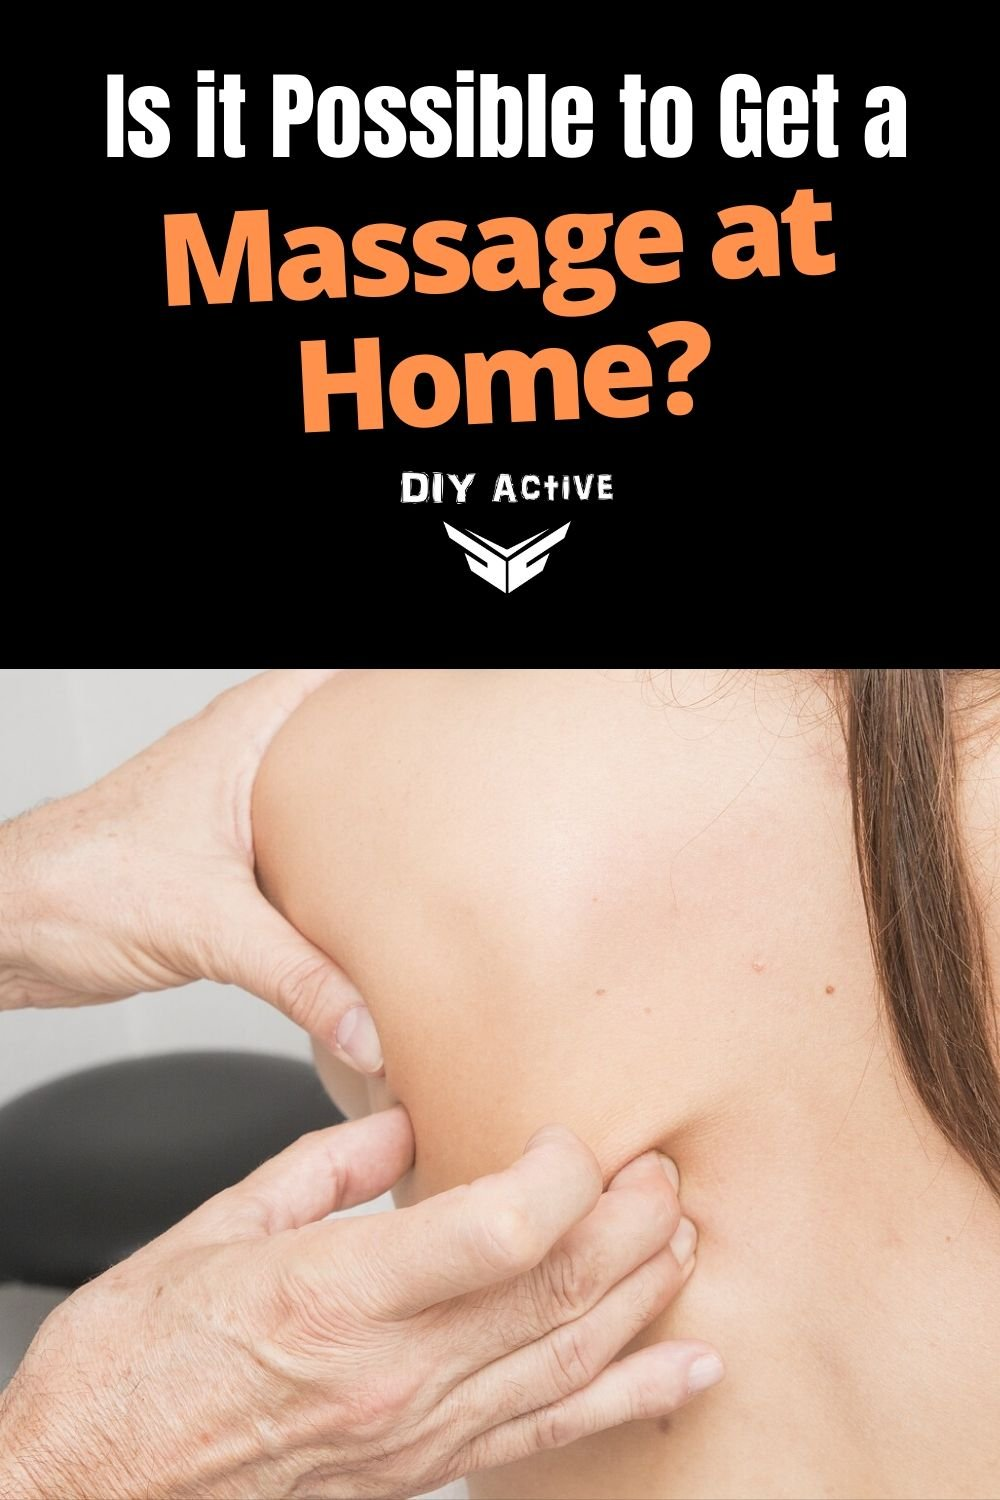 Is it Possible to Get a Massage at Home Today